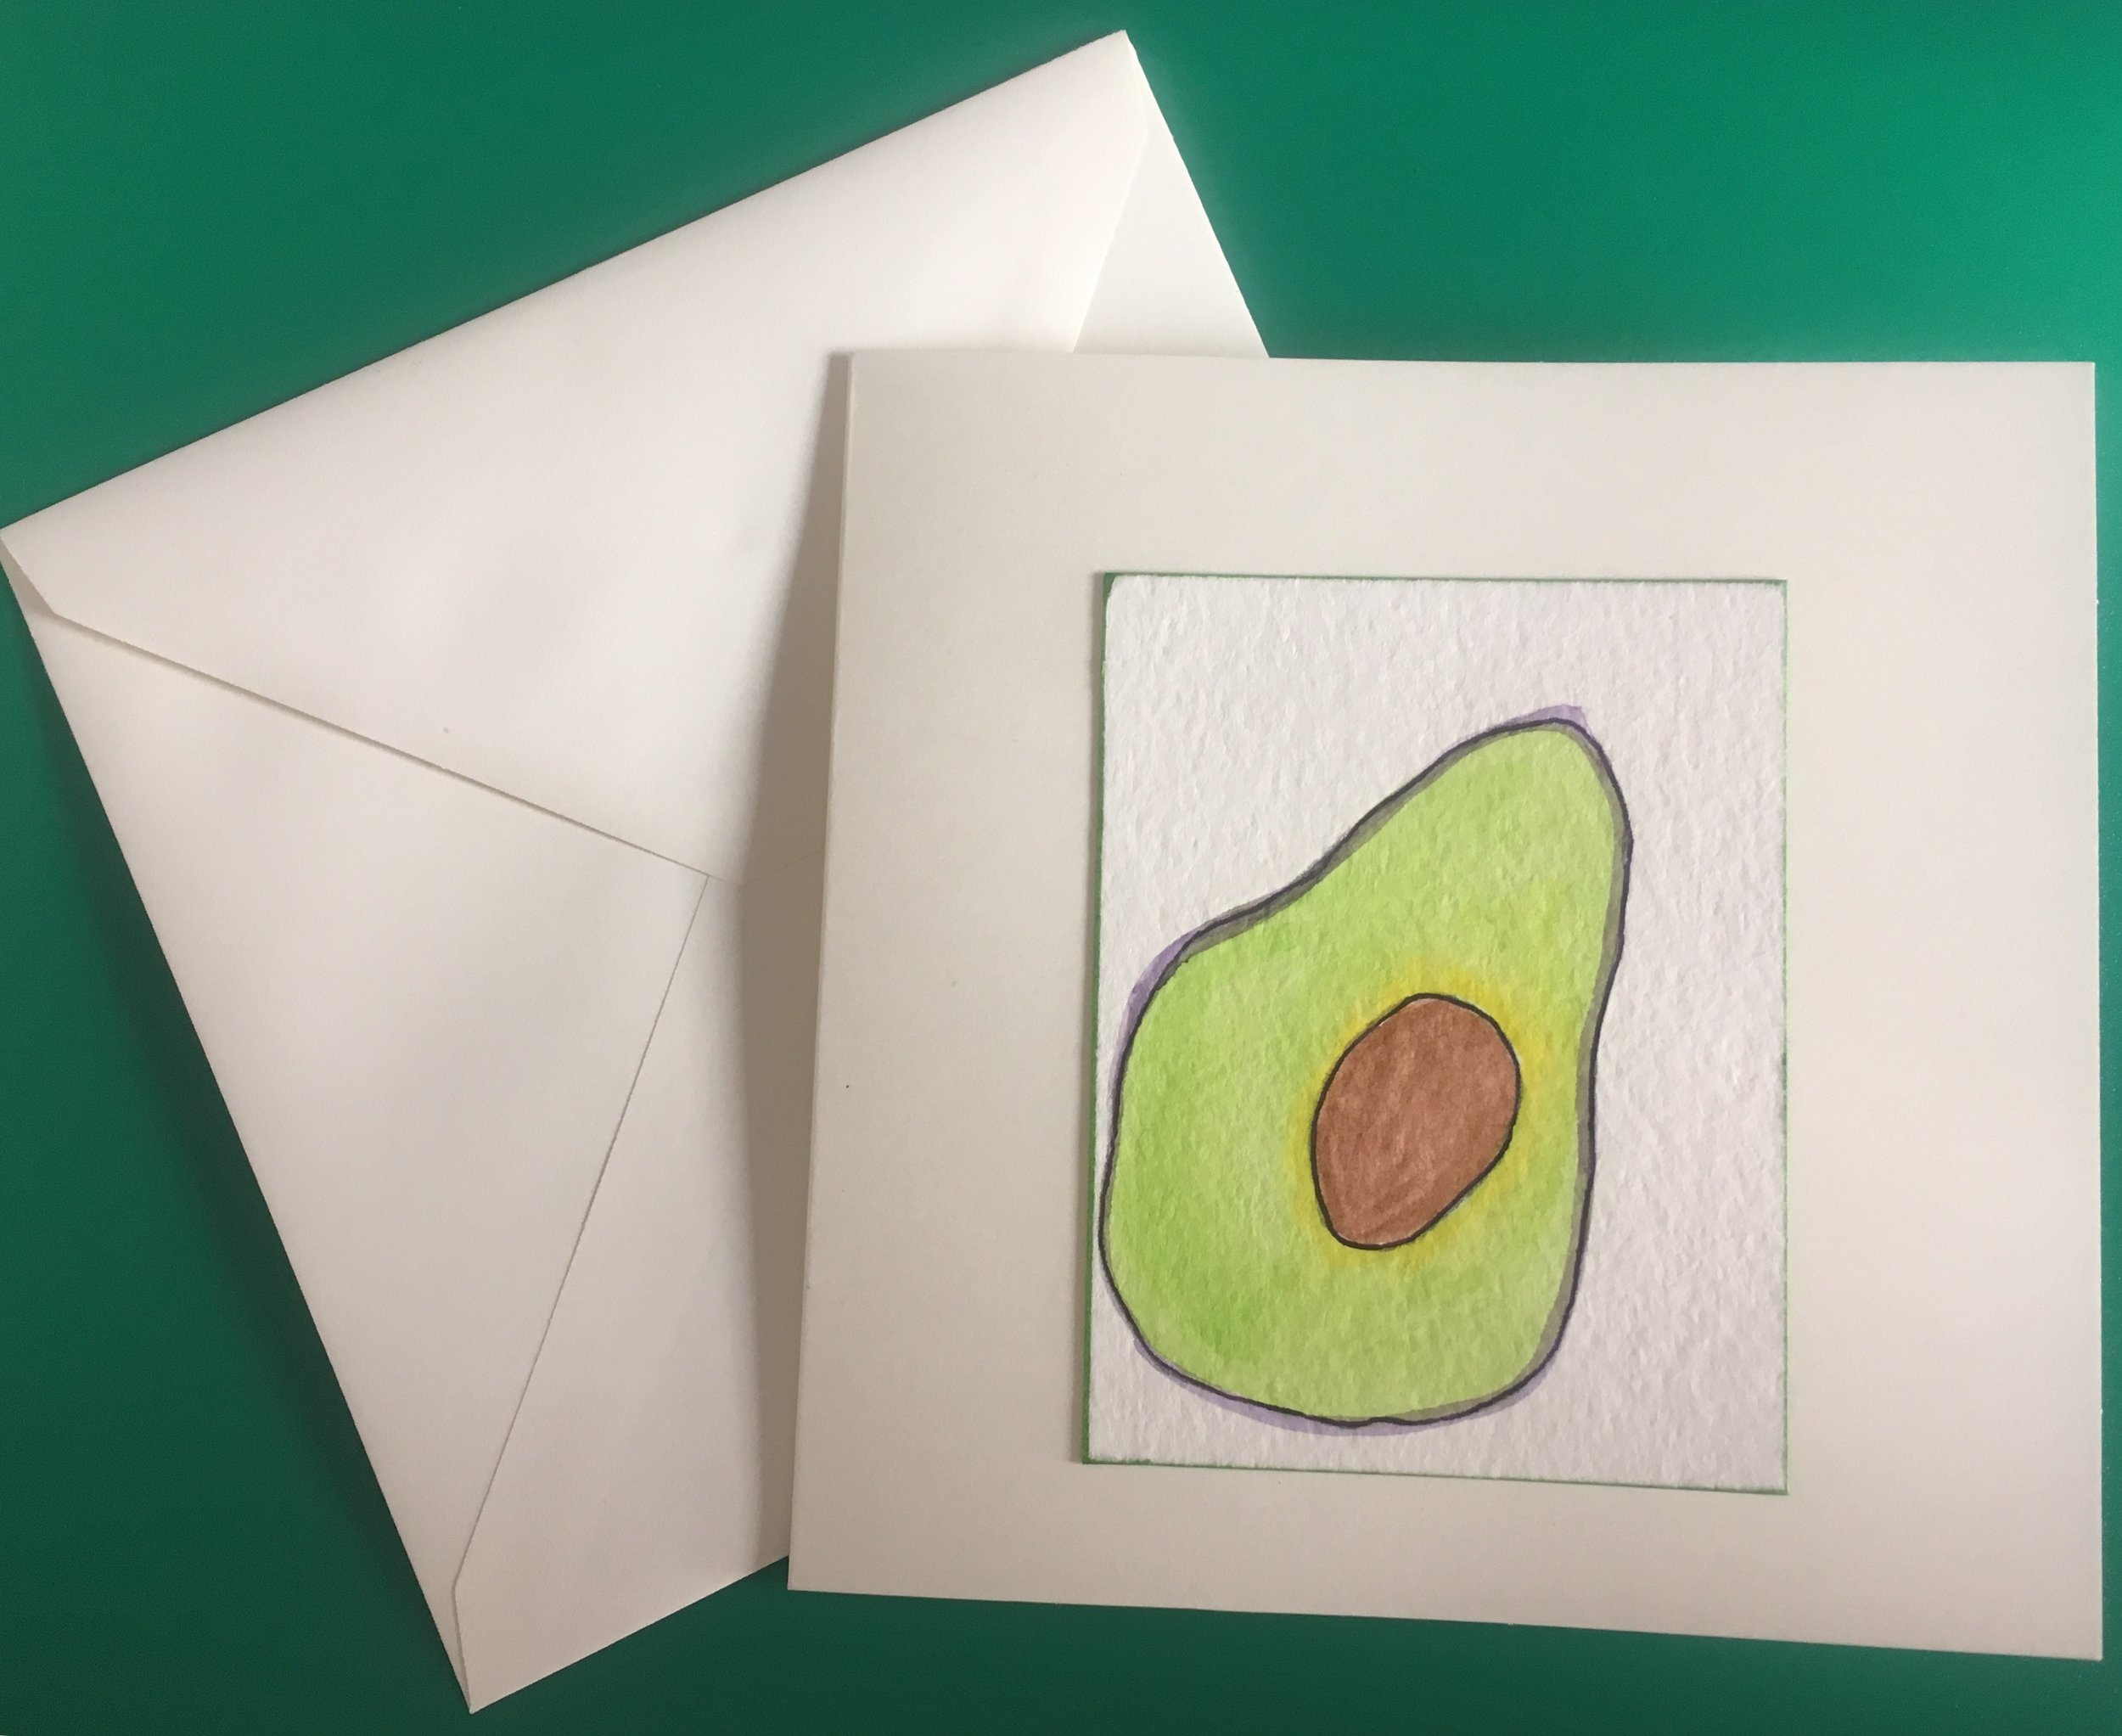 Here's a card I made - Wabi Sabi Avo.